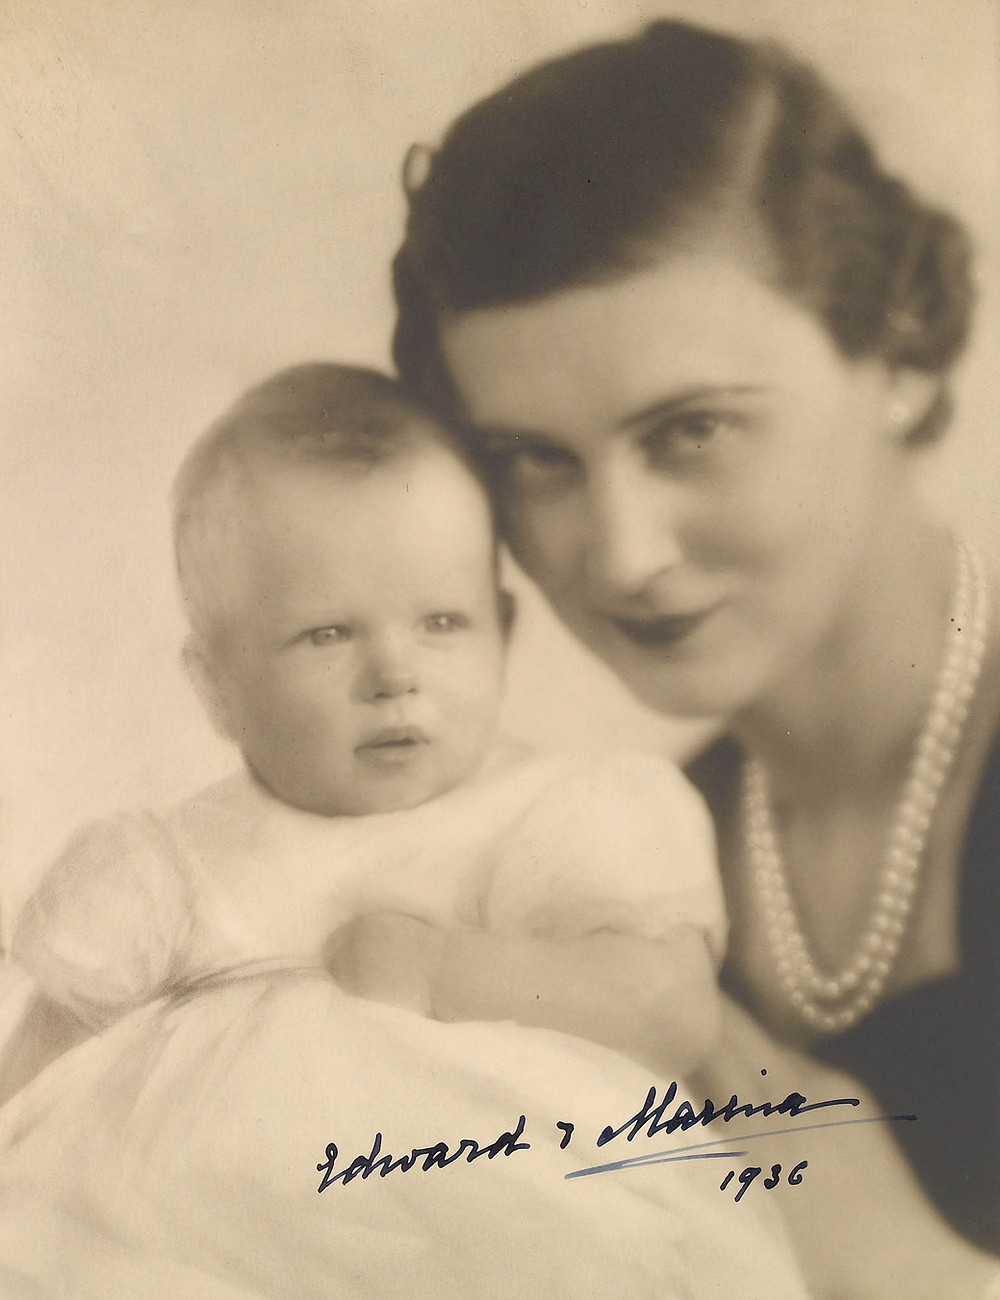 The Duchess of Kent with Prince Edward, 17 Feb 1936. Royal Collection Trust/(c) Her Majesty Queen Elizabeth II 2018